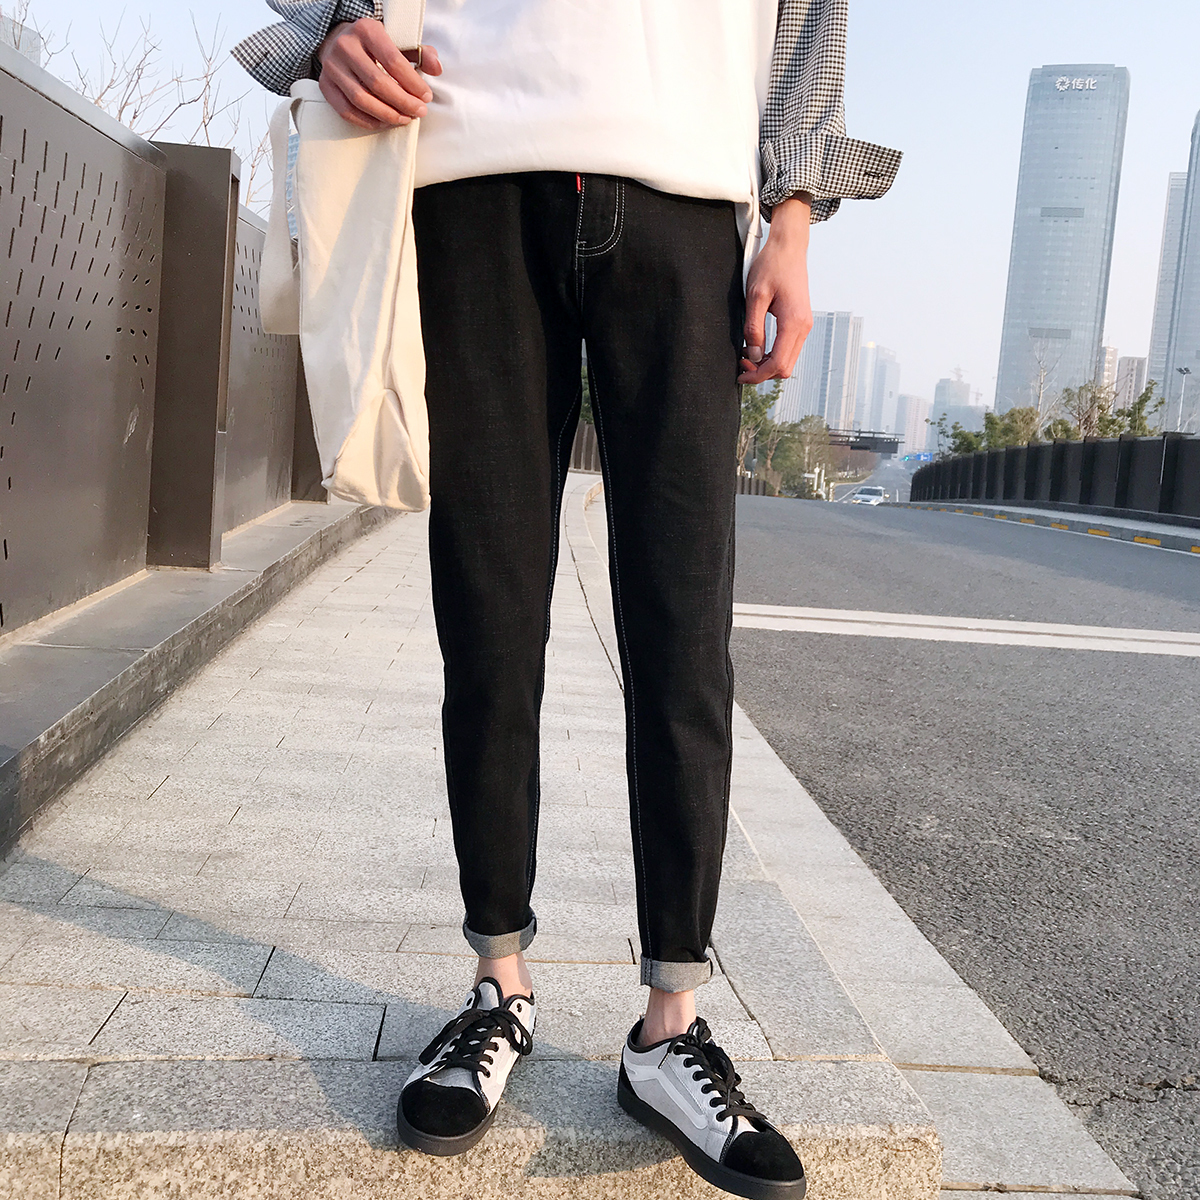 2018 Mens Newest Fashion Straight High Elasticity Feet Pants Slim Fit Loose Casual Blue/black Color Jeans Trousers Size 28-34